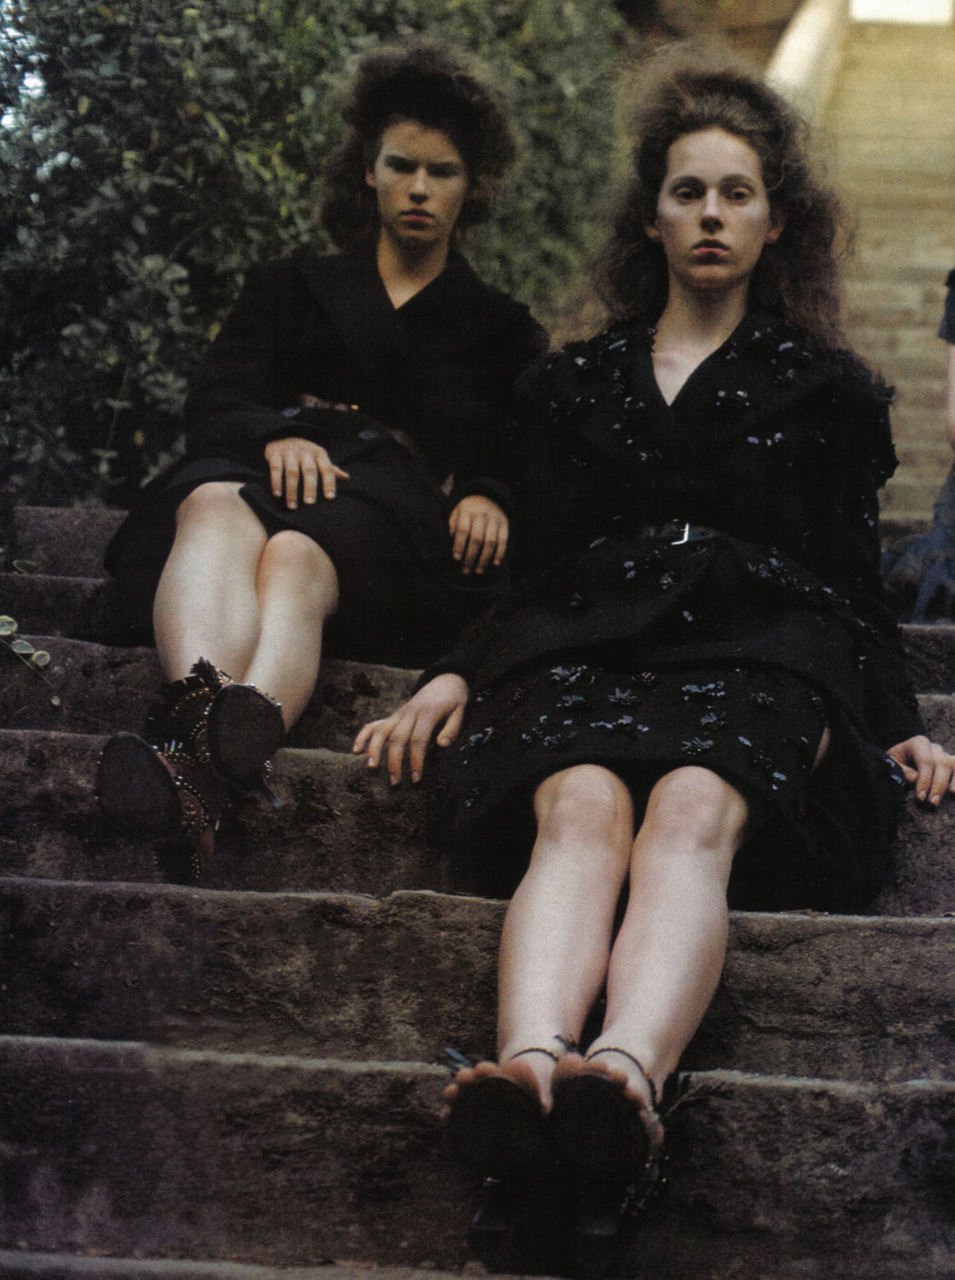 Vogue Italia October 2009, Variations On Chic, by Deborah Turbeville